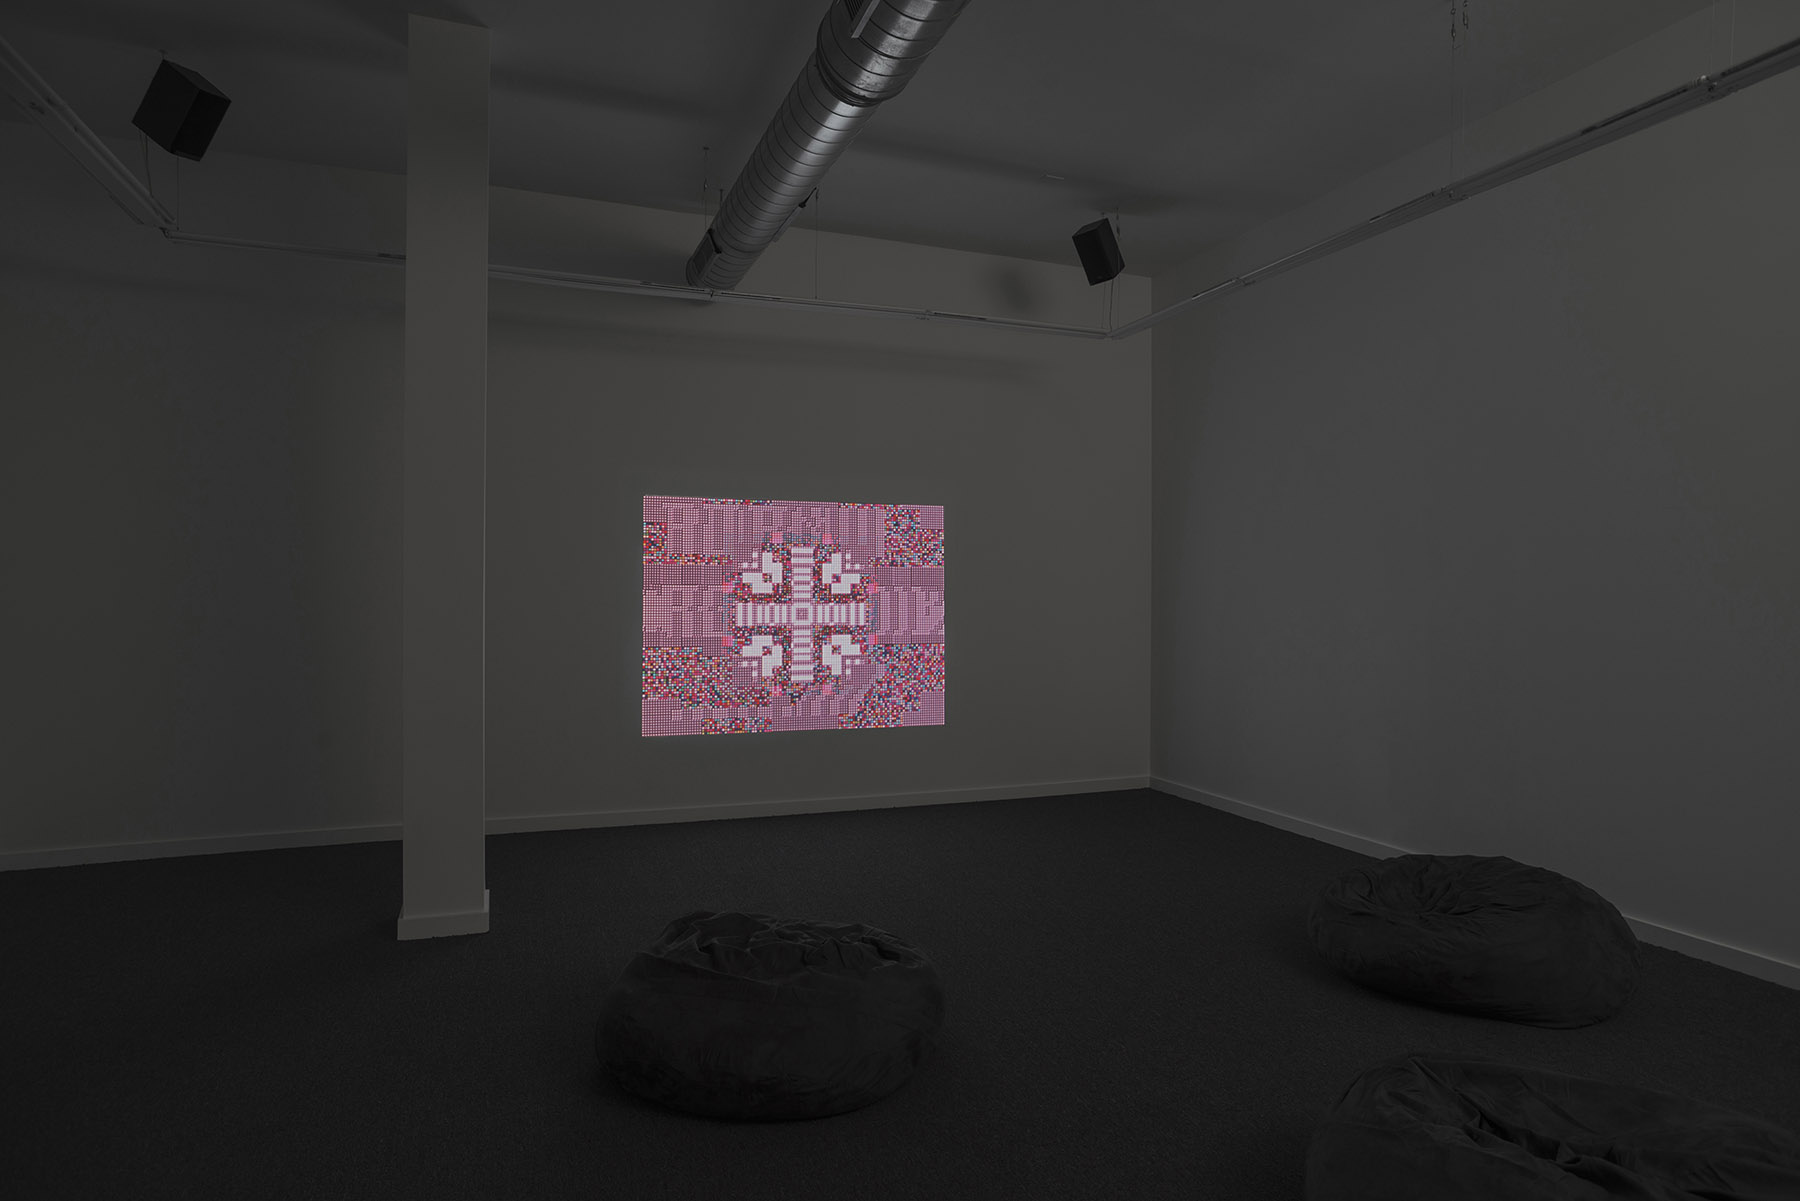 VanDerBeek_Installation view at DOCUMENT11_Web.jpg